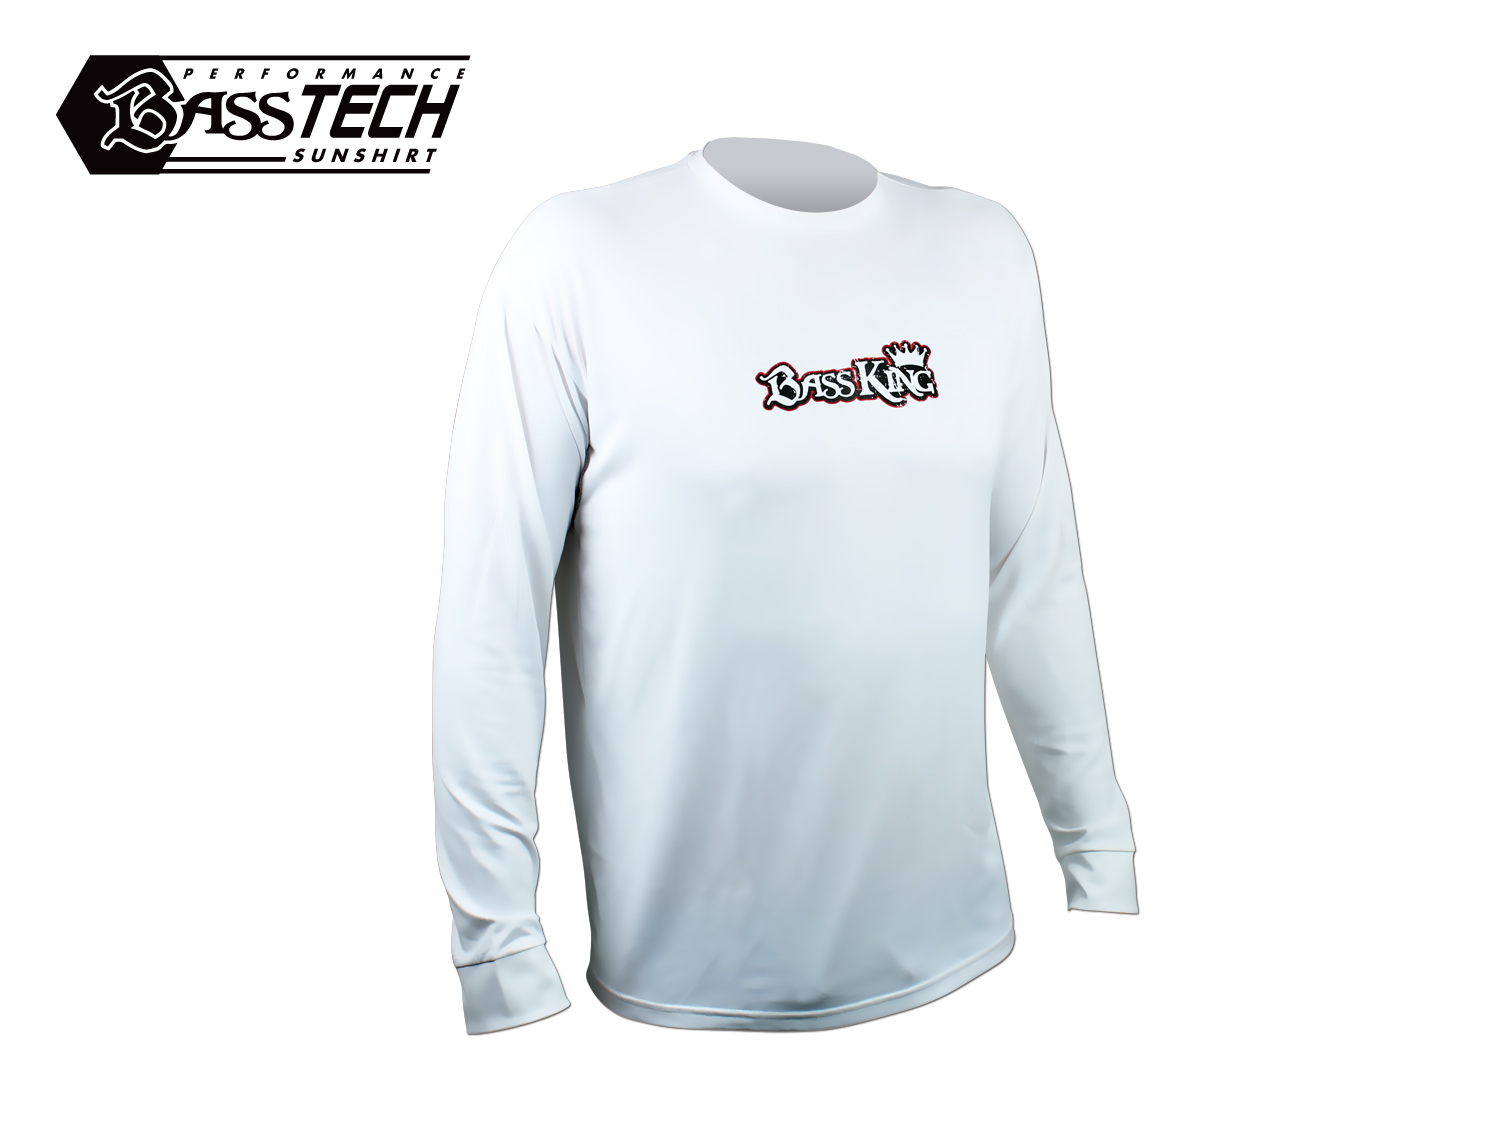 Shop bass king bass fishing clothing and outdoor gear for Fishing shirts that keep you cool